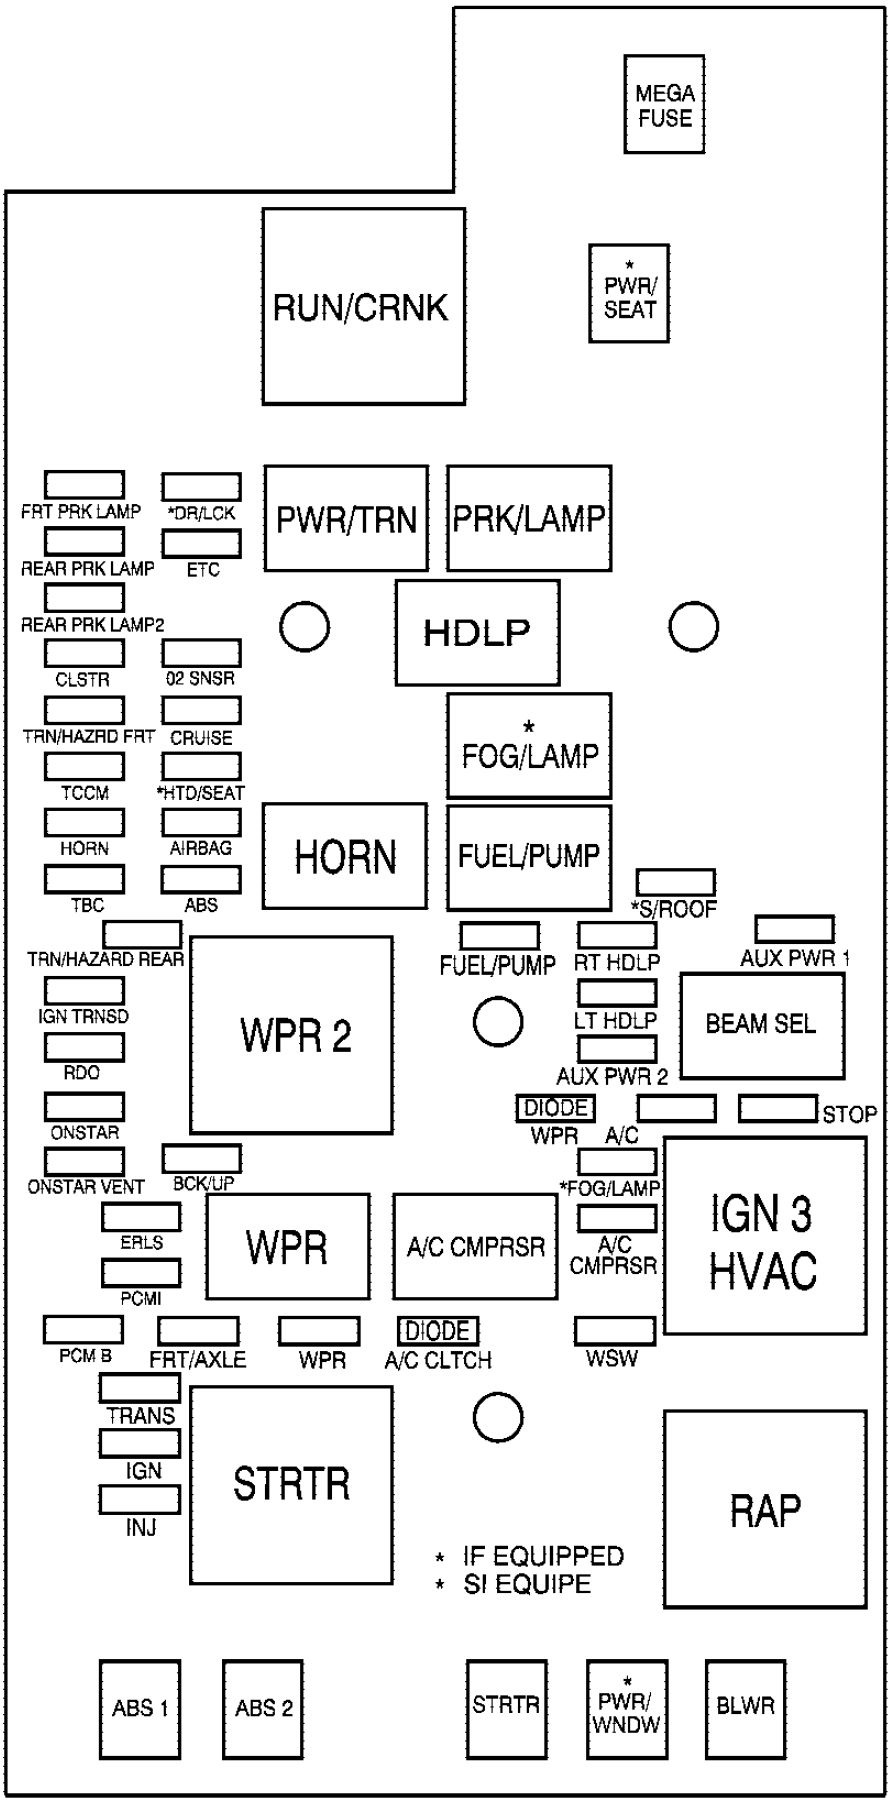 05 gmc canyon fuse diagram database wiring diagram2006 gmc c5500 fuse box location wiring diagram 05 [ 891 x 1811 Pixel ]